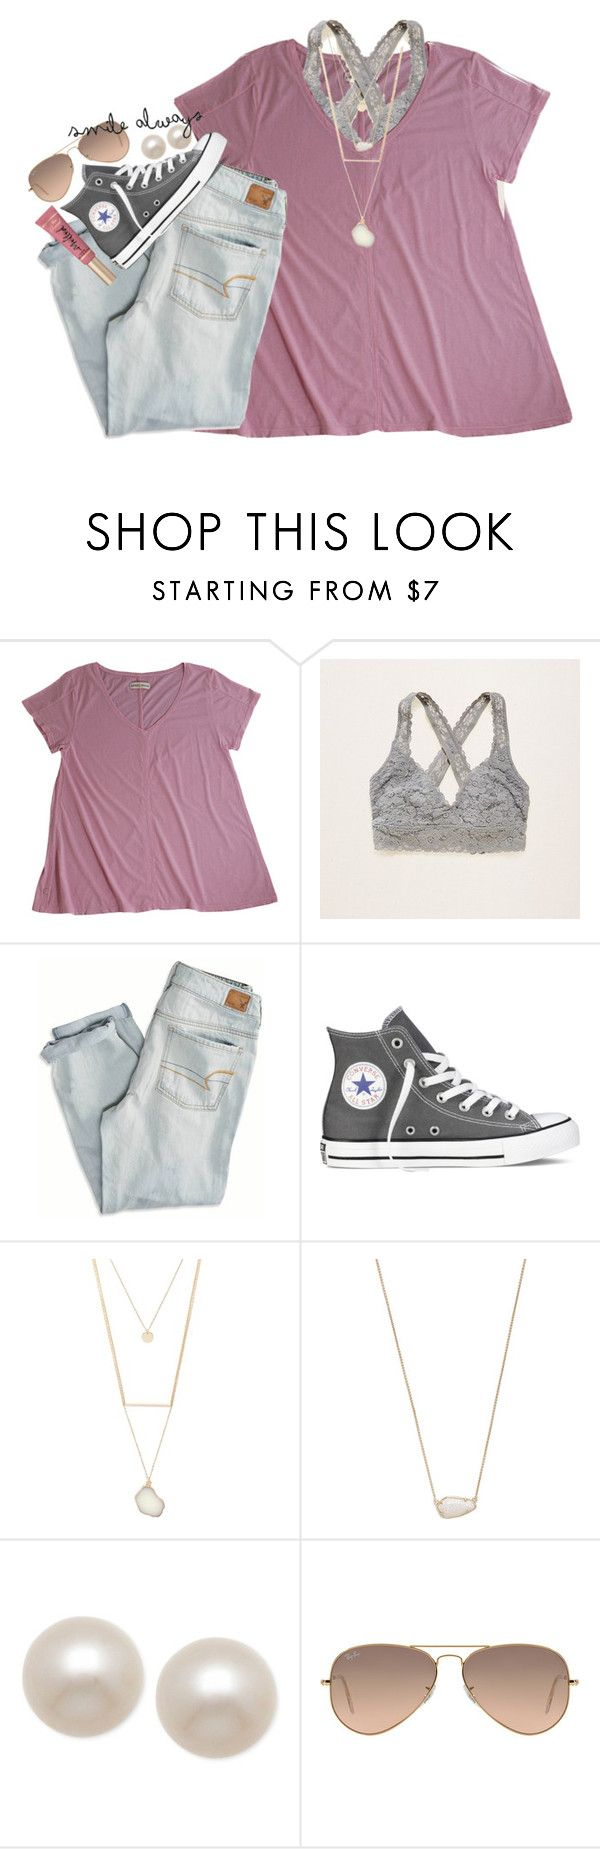 """want a bff set w me? rtd for more info"" by smbprep ❤ liked on Polyvore featuring LABEL+thread, Aerie, American Eagle Outfitters, Converse, Forever 21, Kendra Scott, Honora, Ray-Ban and Too Faced Cosmetics"